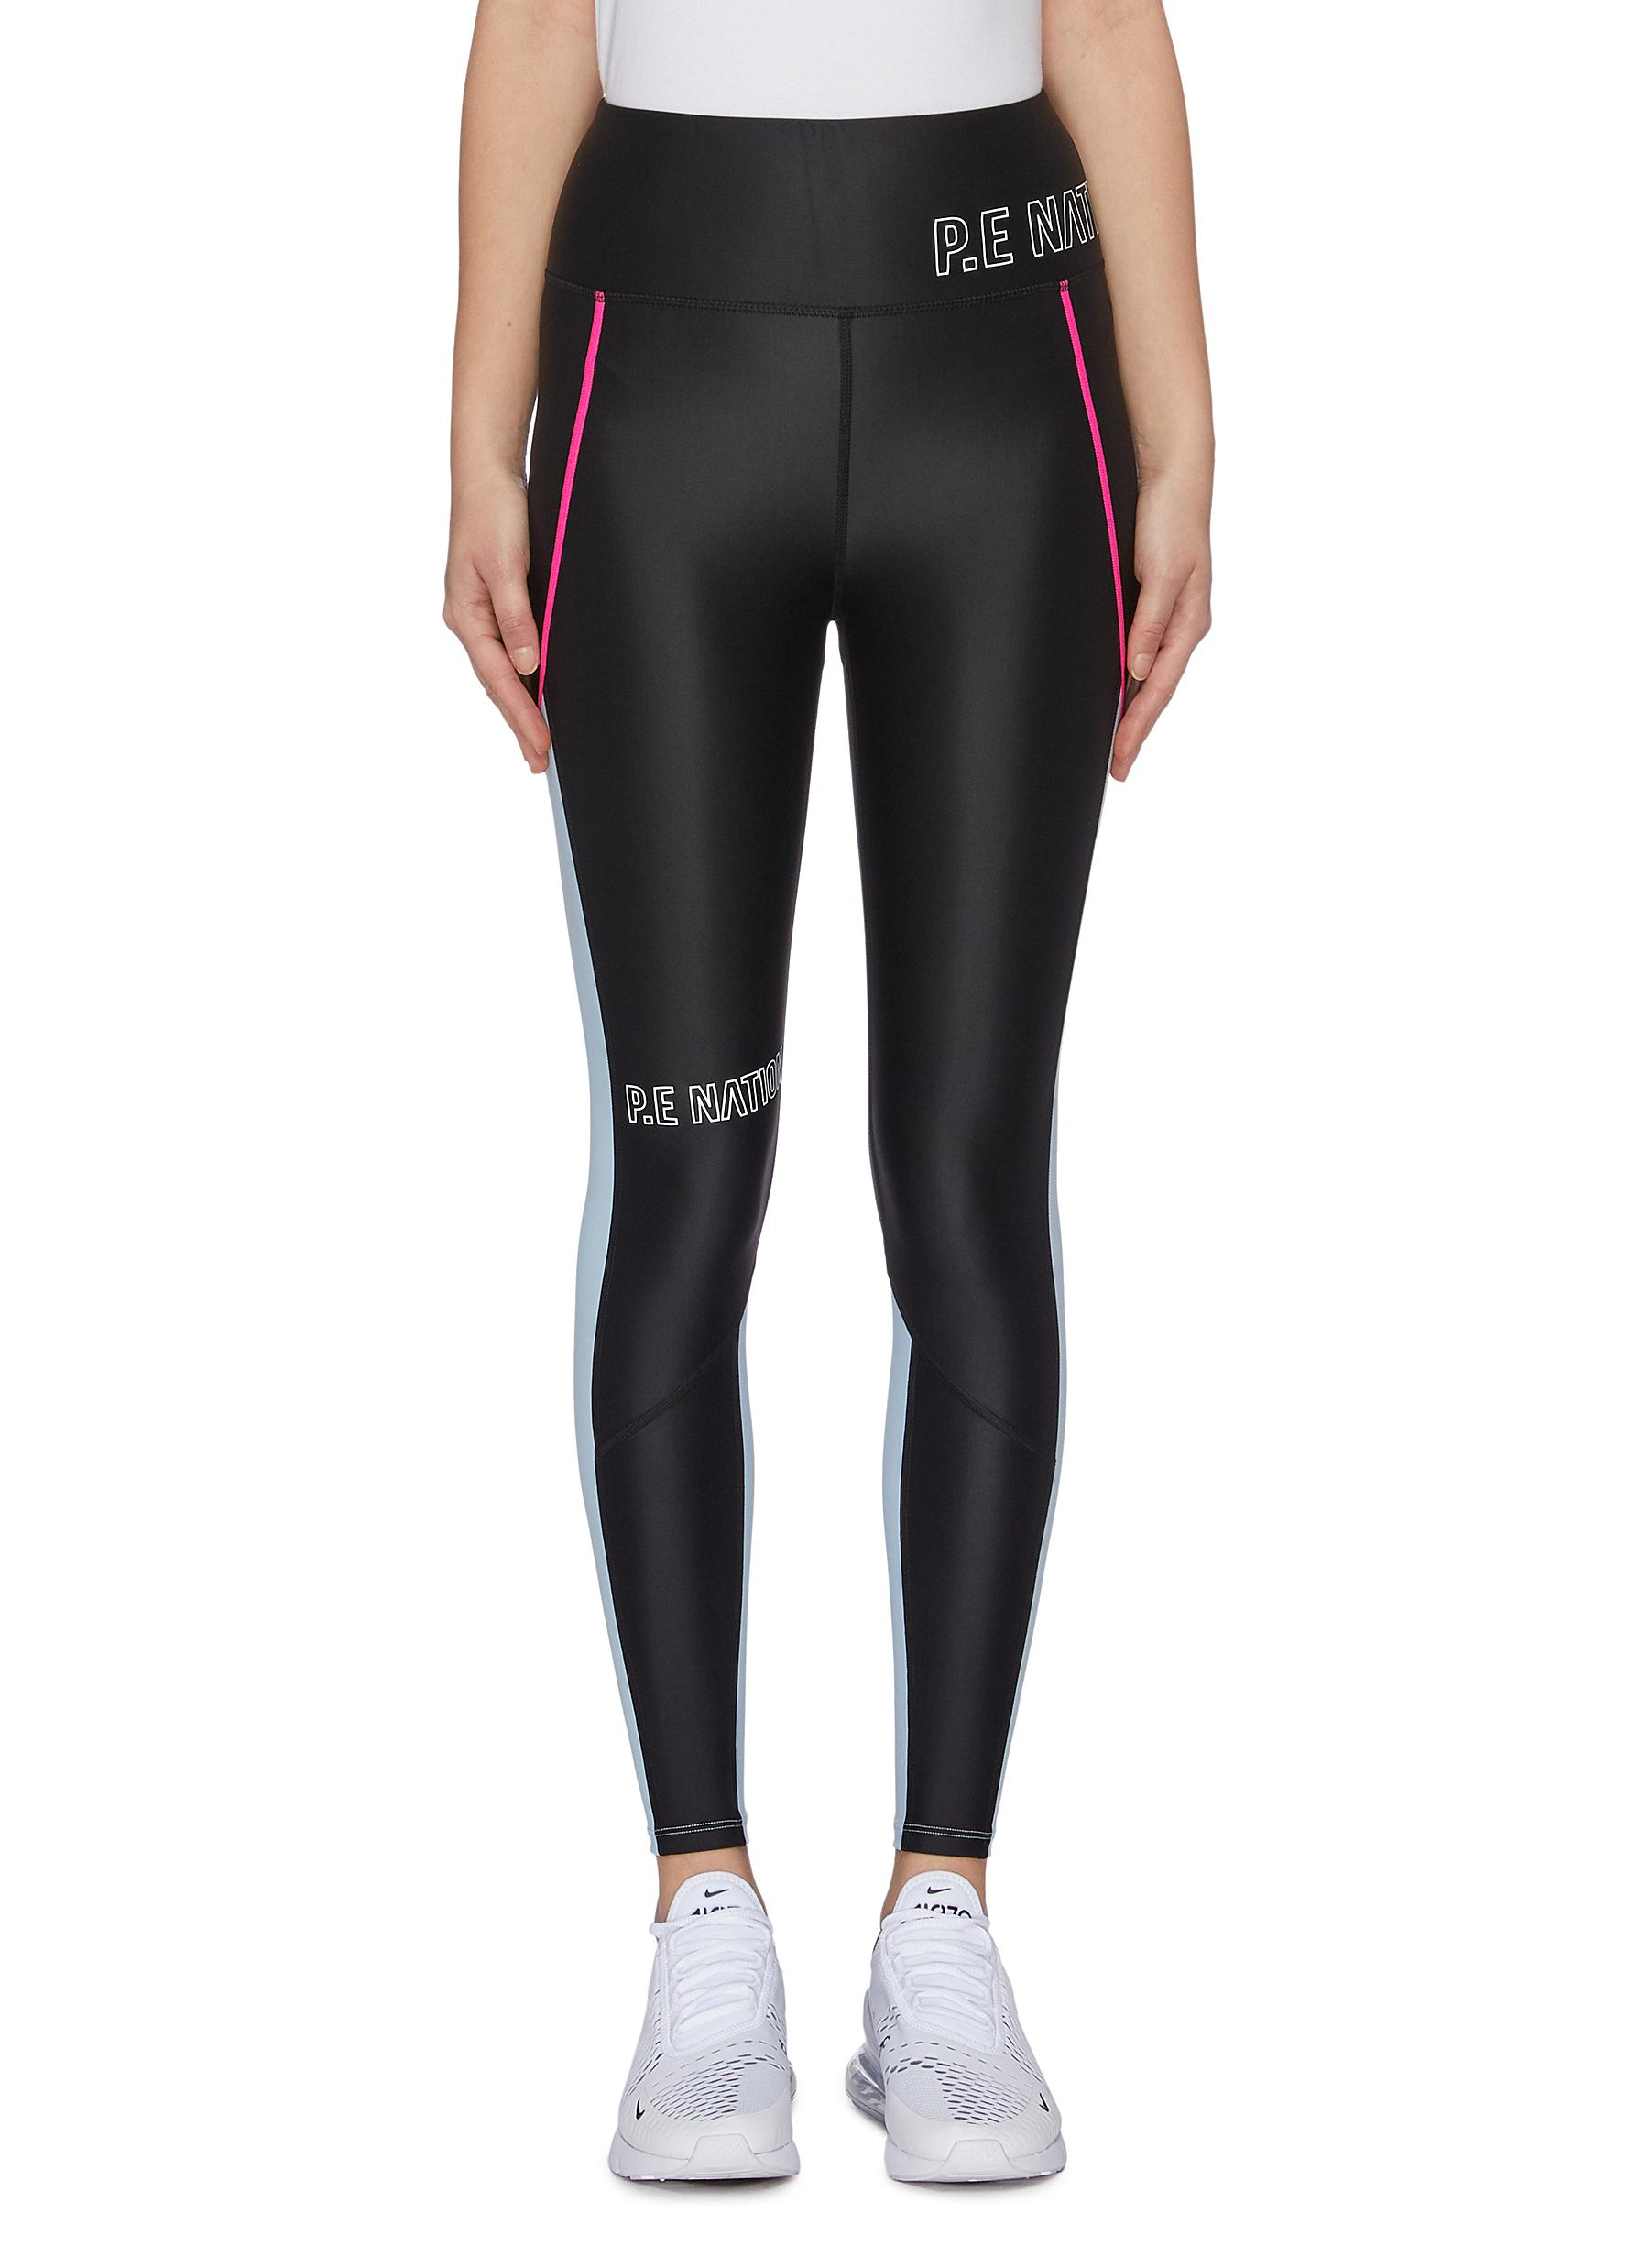 Saber contrast outseam performance leggings by P.E Nation